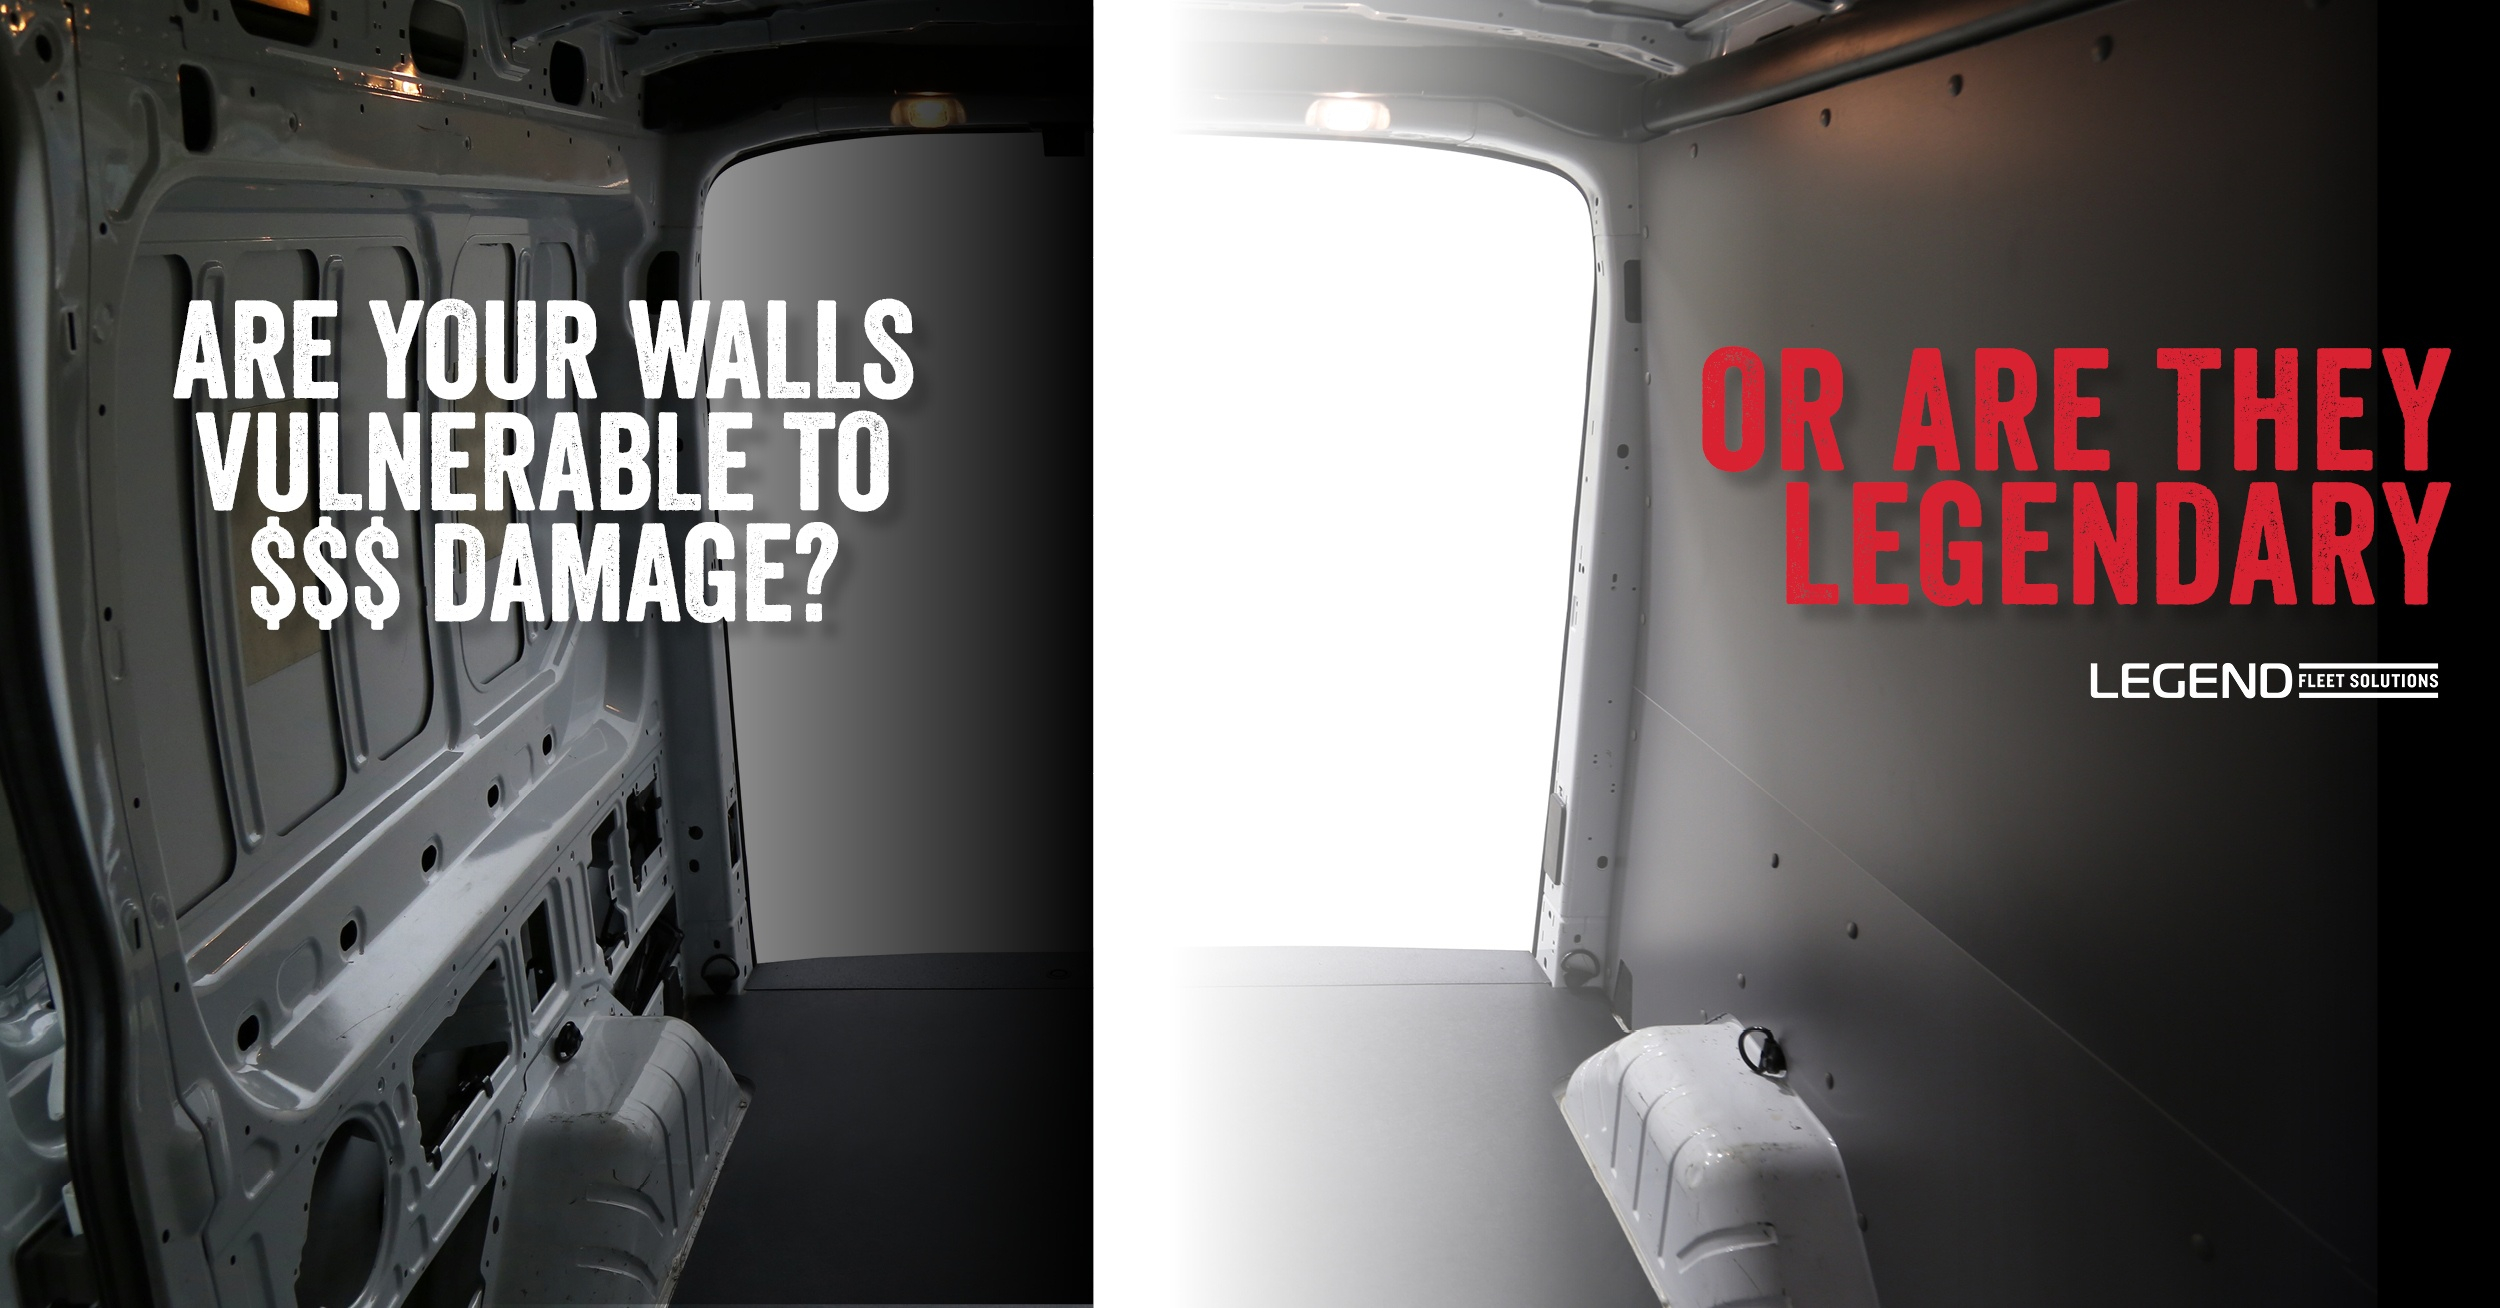 Are your walls legendary.jpg